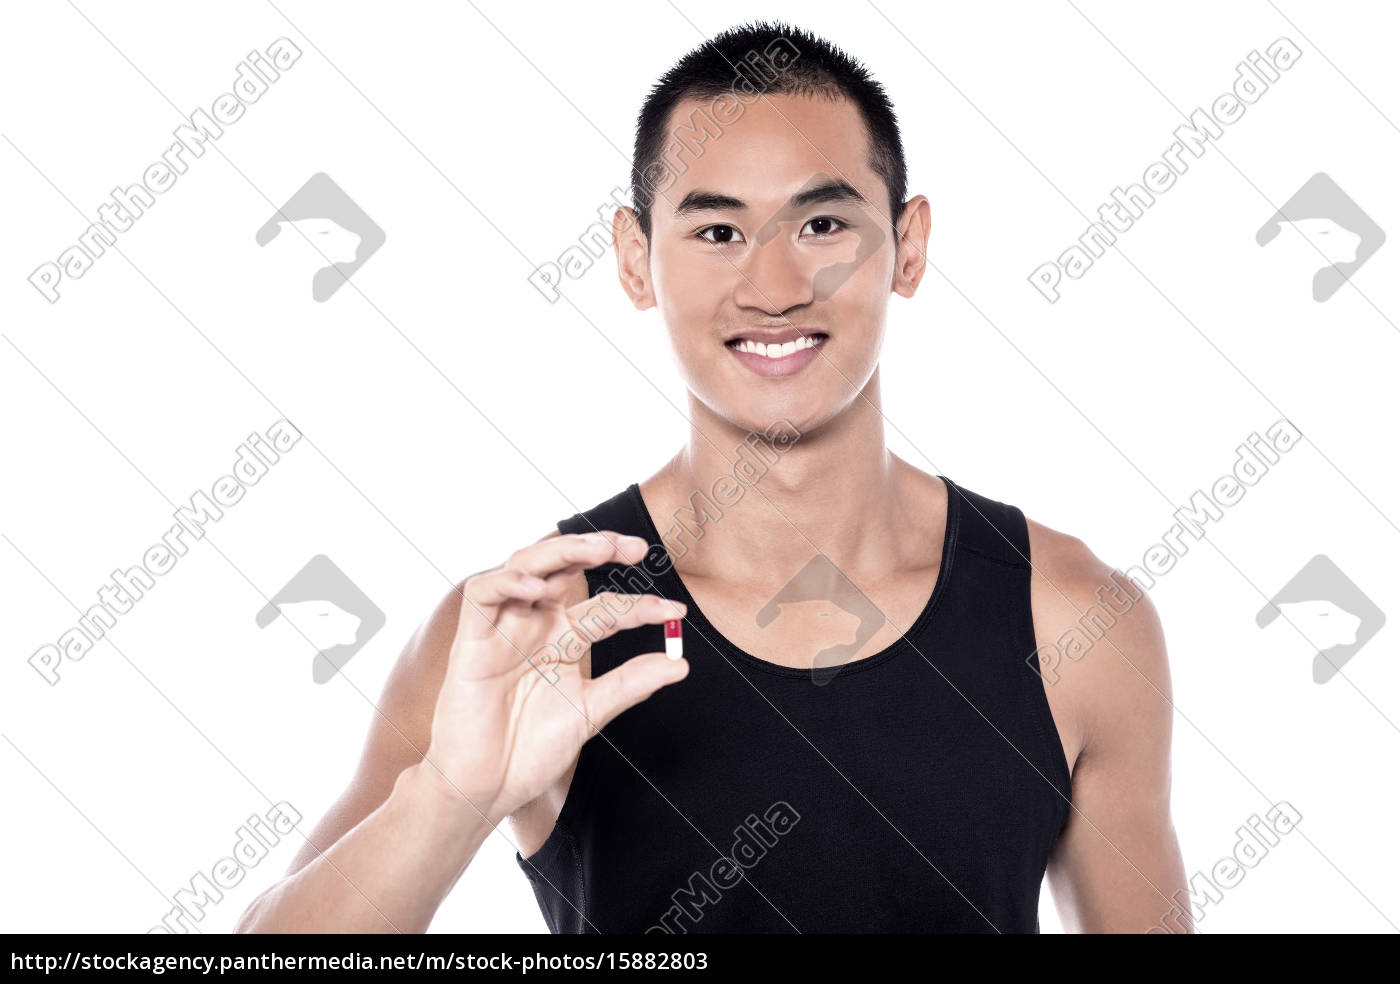 young, man, holding, vitamin, pill - 15882803